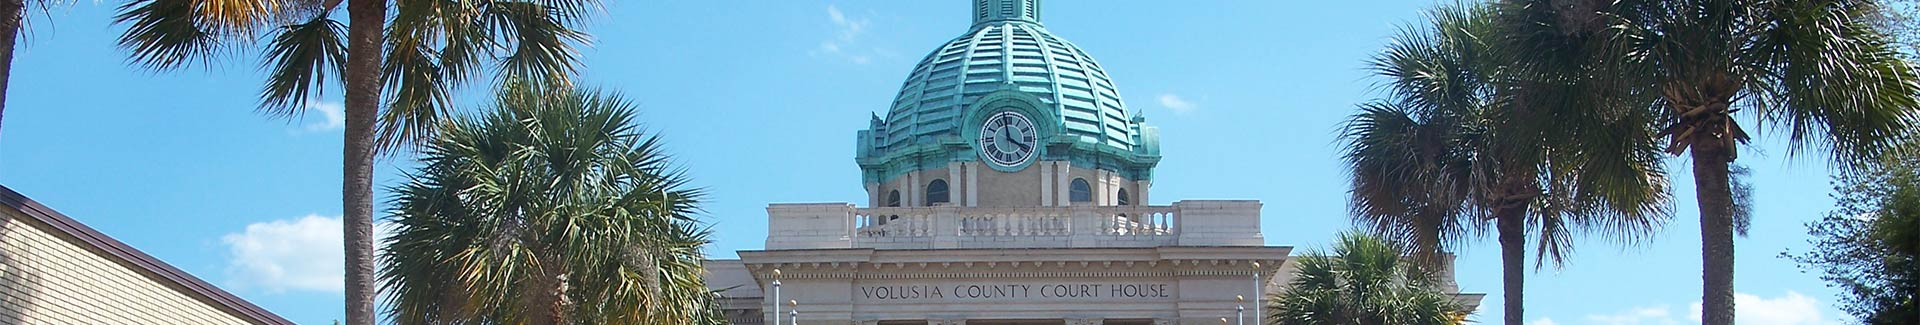 Volusia County Courthouse